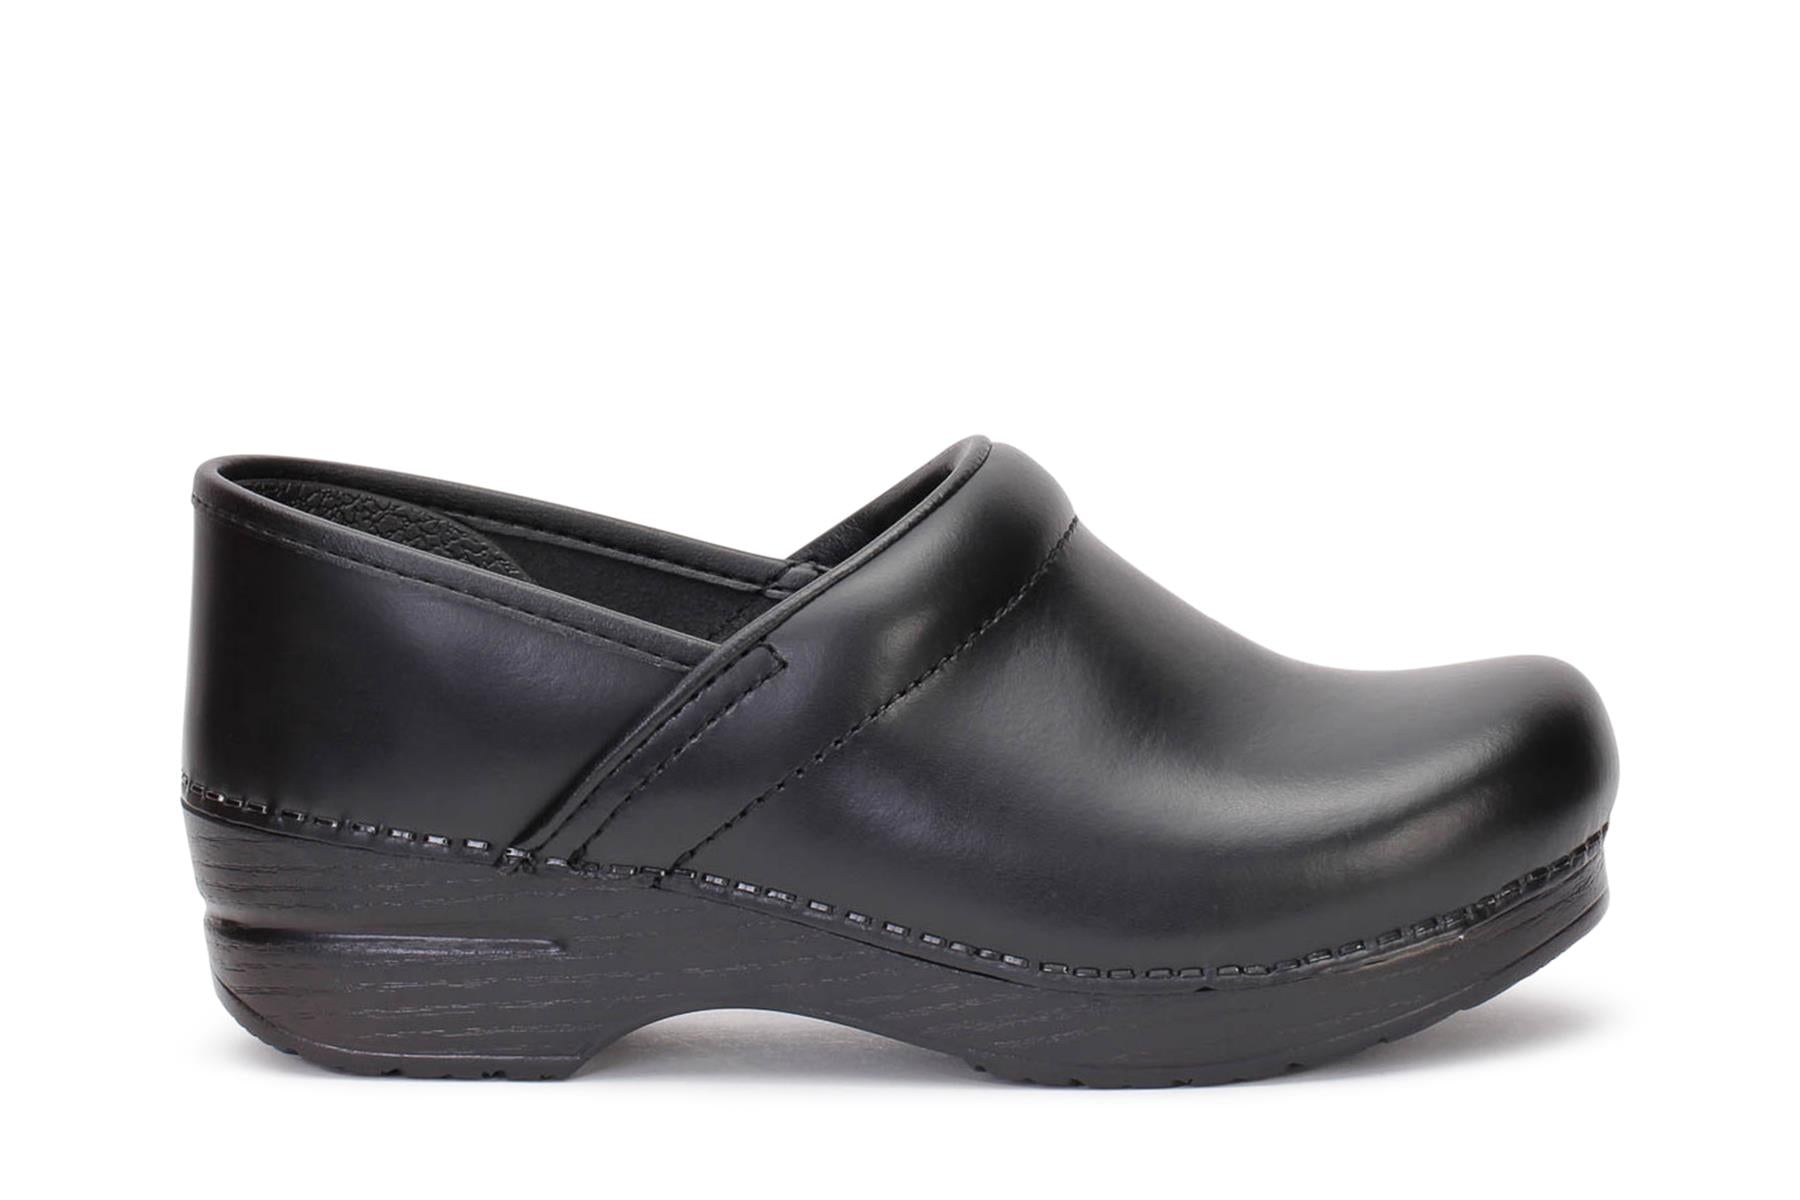 Dansko Women's Clog Shoes Wide Pro Cabrio Black Leather 899020202